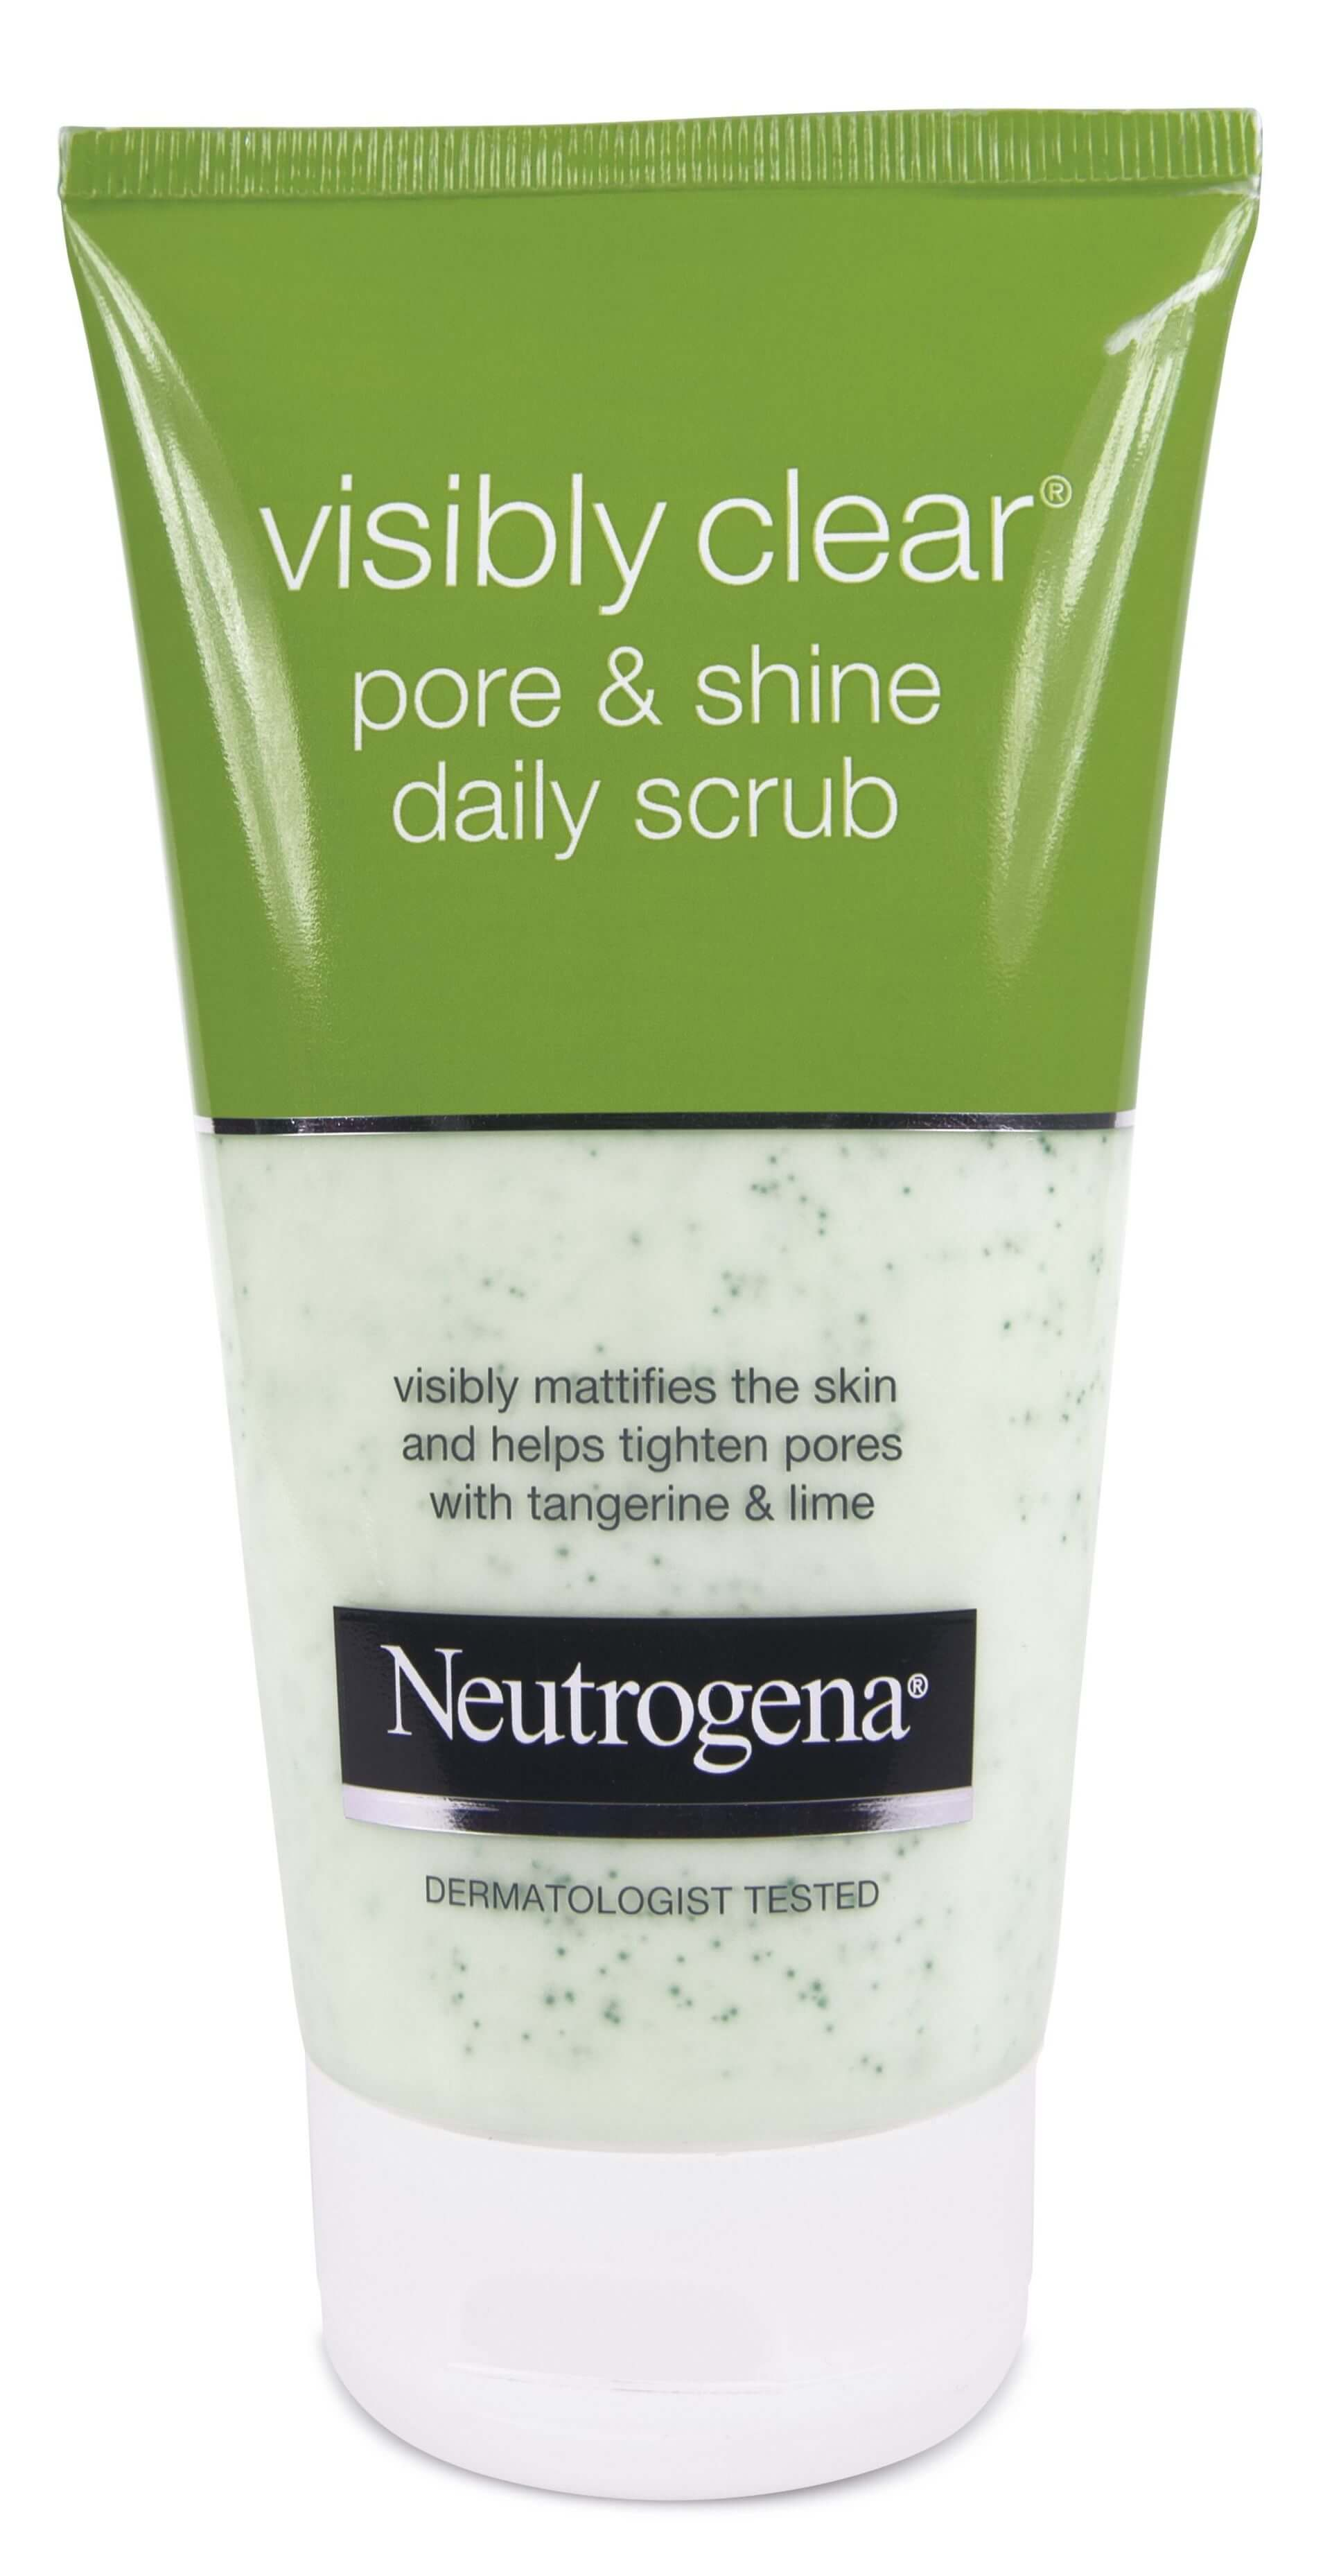 VisiblyClear PS Daily Scrub